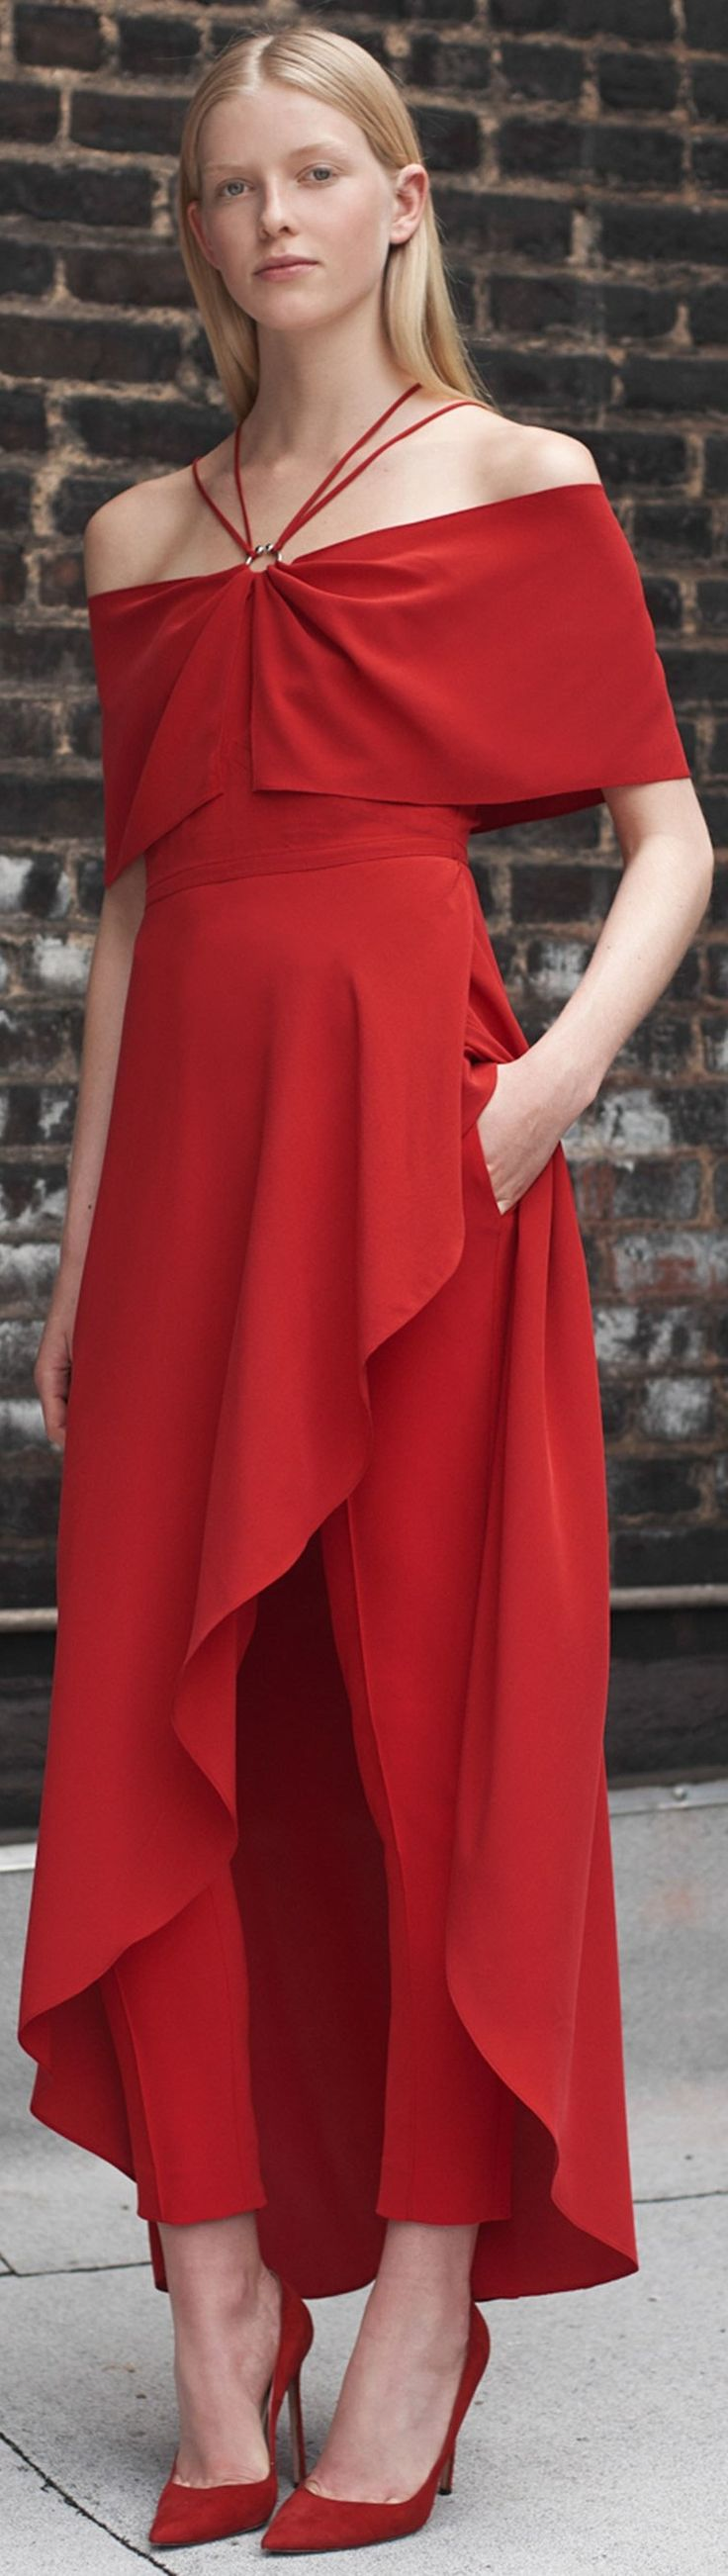 1389 best Gowns images on Pinterest | Evening gowns, Fashion show ...